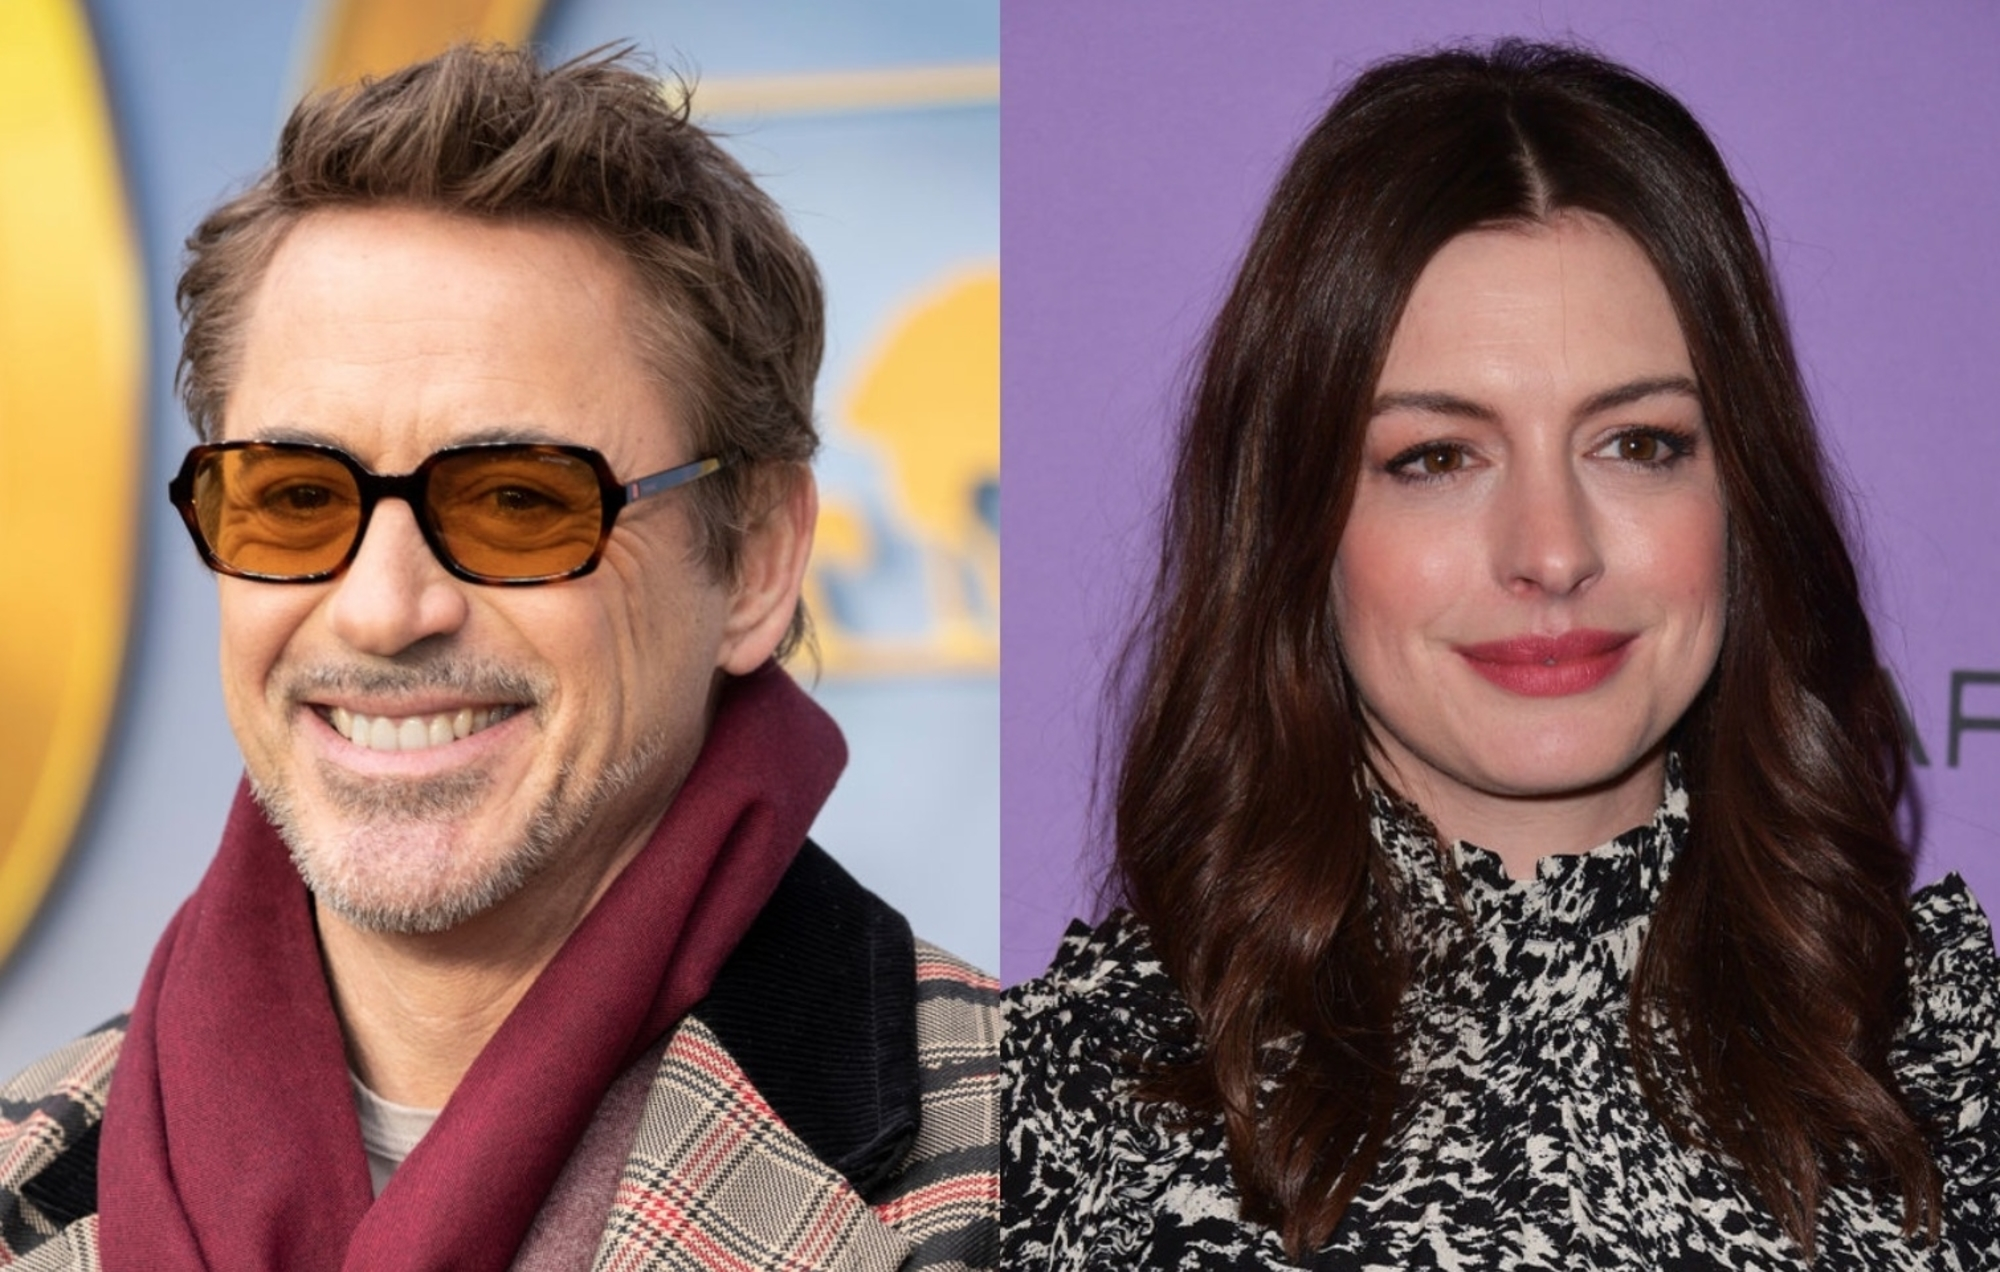 Robert Downey Jr. and Anne Hathaway lead 'worst acting' nominations at Razzies 2021 - NME